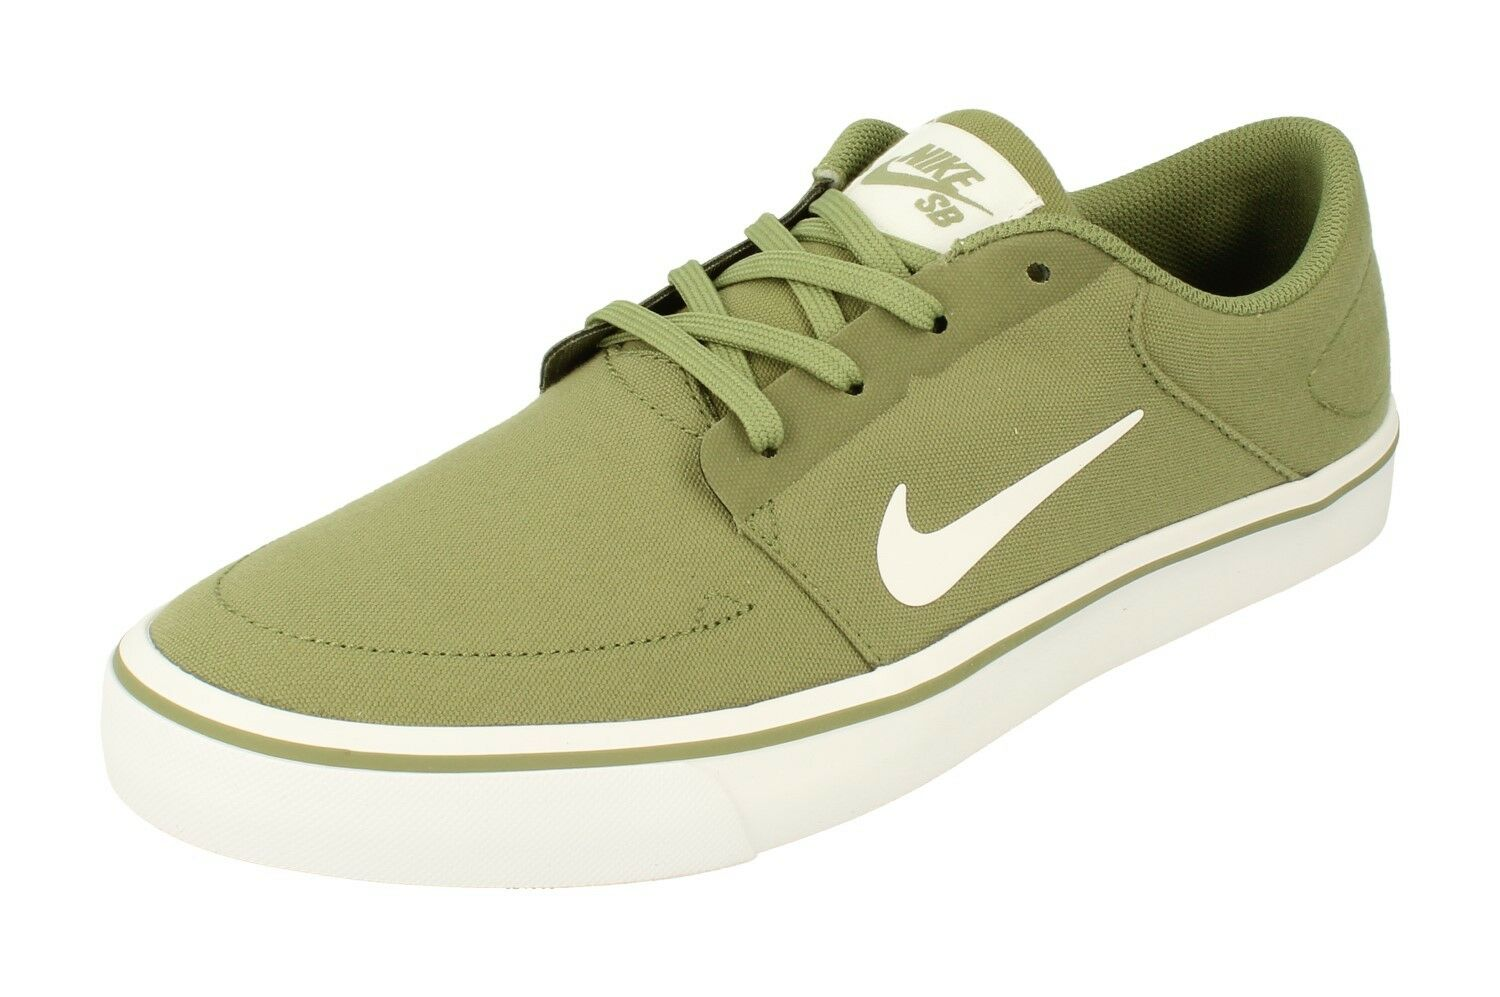 Nike Sb Portmore Canvas Hommes Trainers 723874 Sneakers Chaussures 311